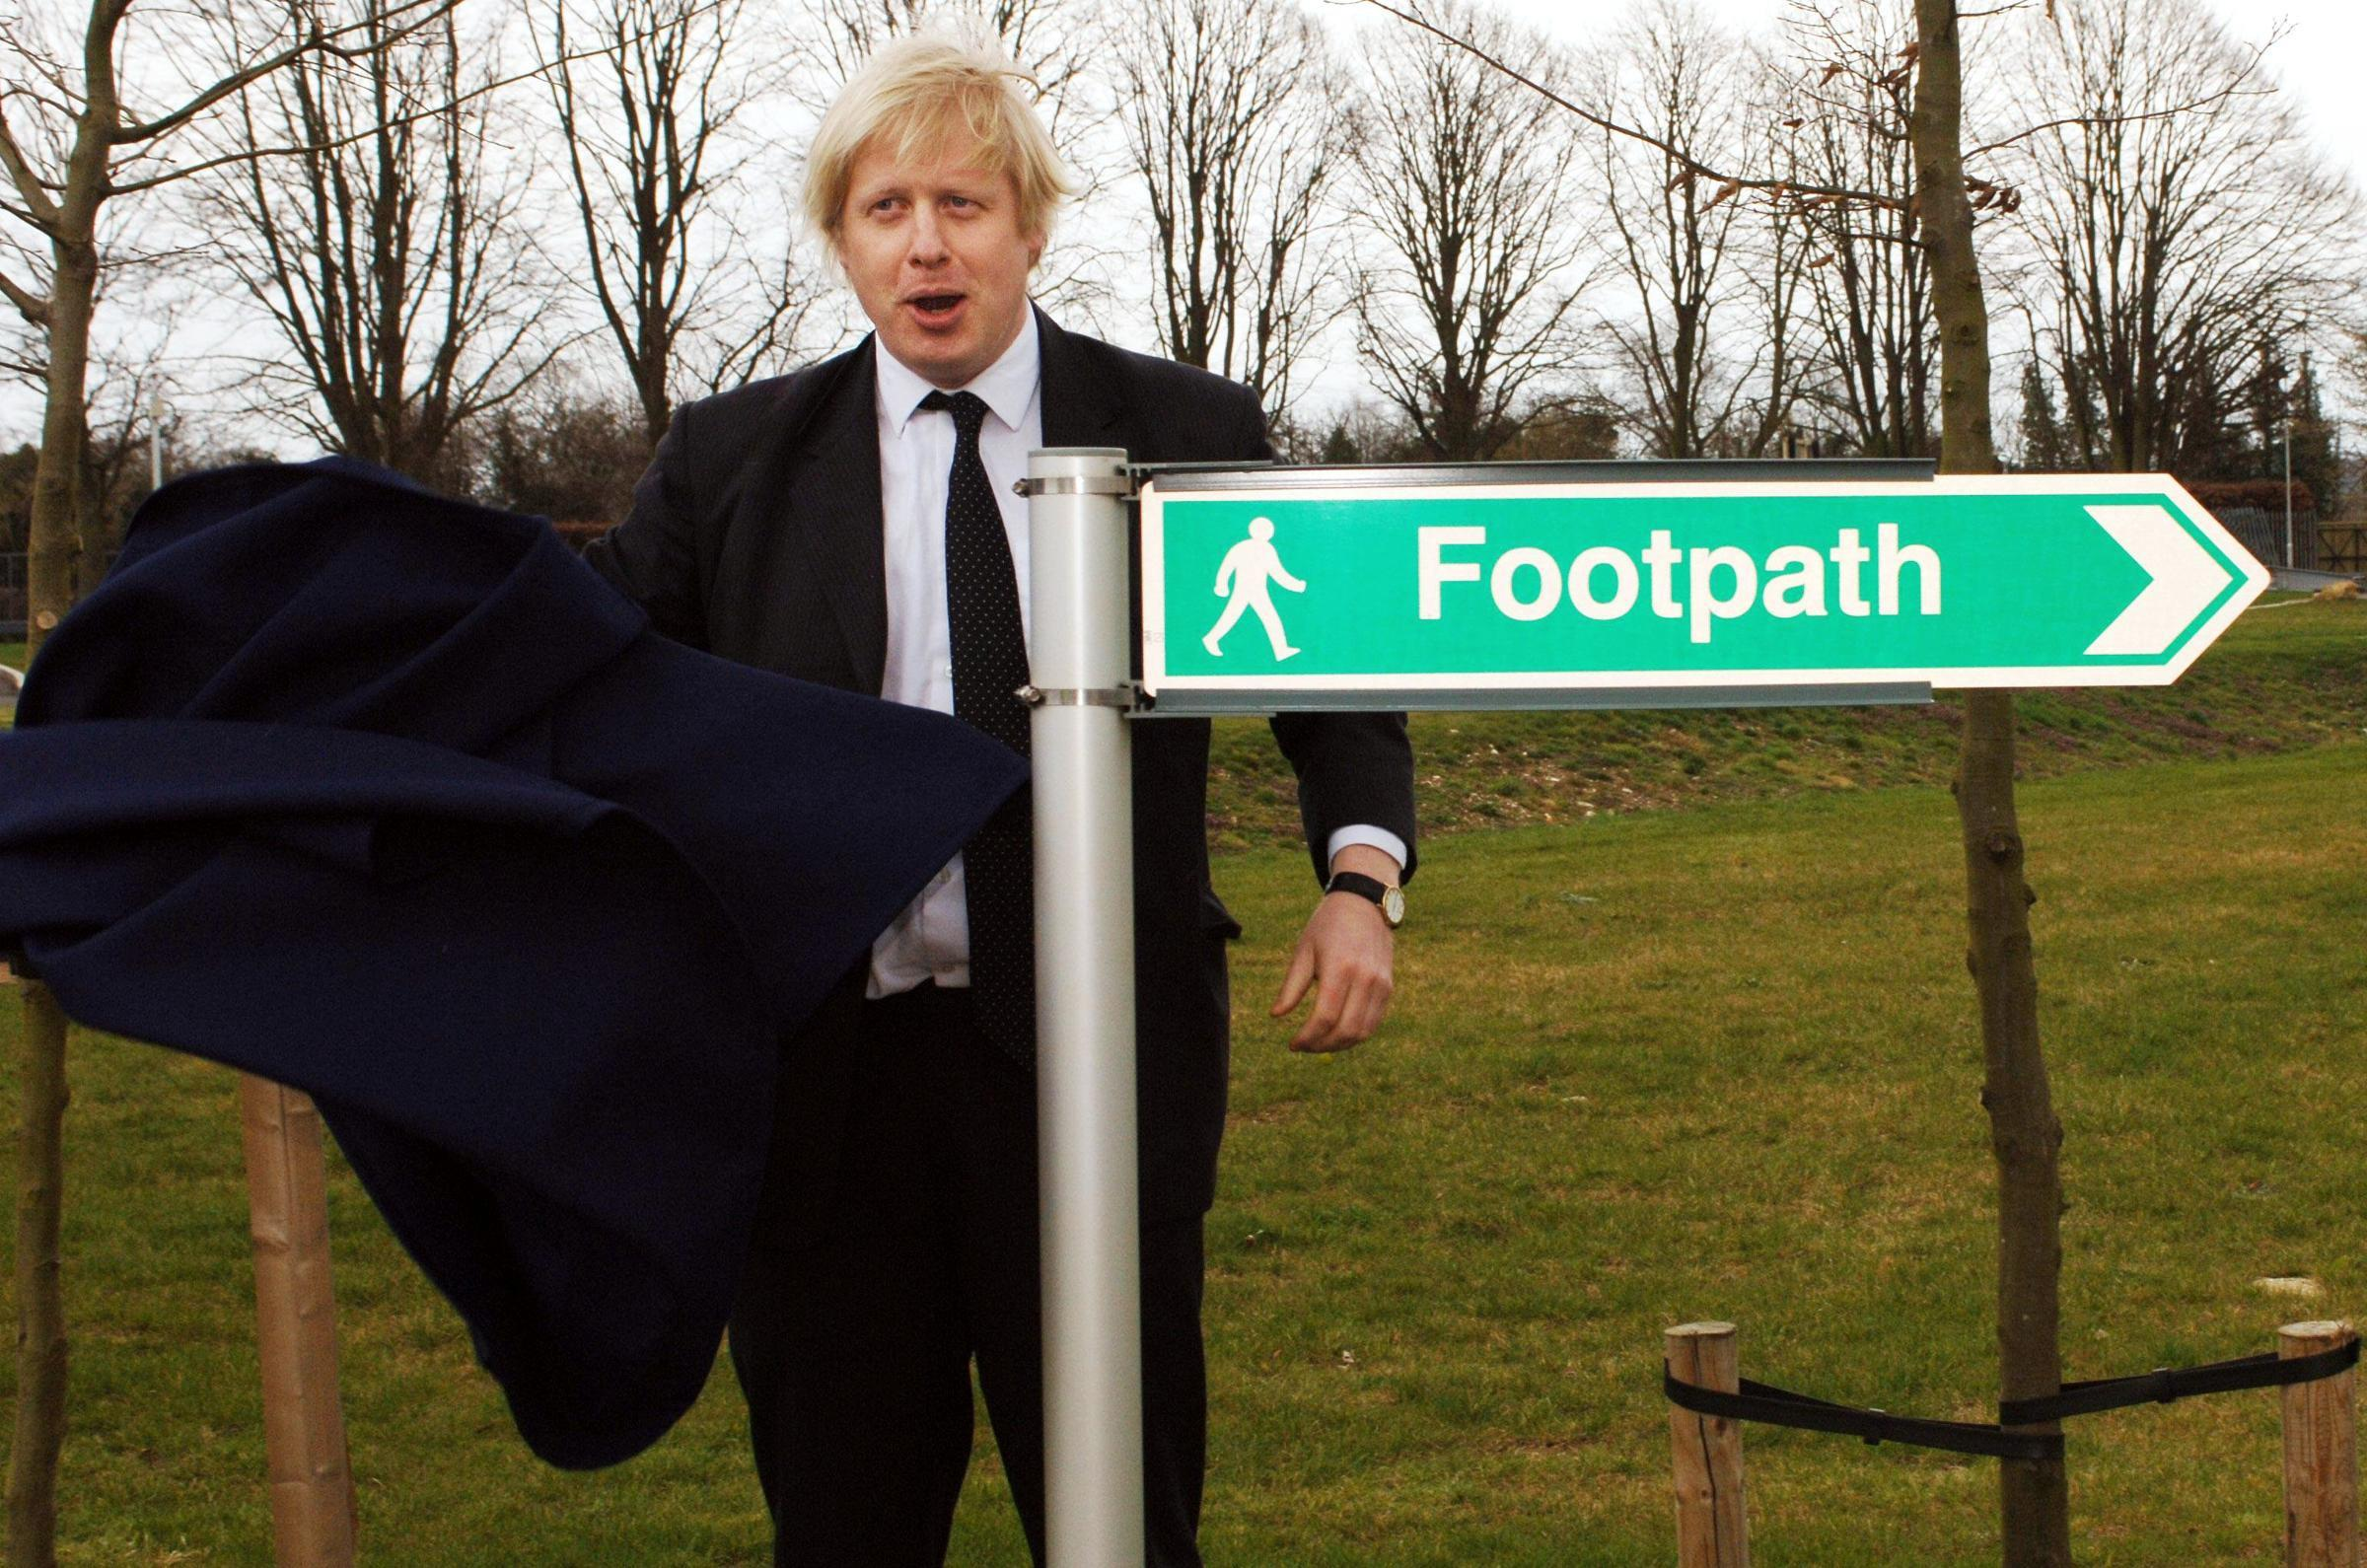 Boris Johnson, MP for Henley and Conservative spokesman on Higher Education, opens a footpath at the Environments Agency in Wallingford, Oxon, Friday April 7 2006. He later started a race between a car, a cyclist, runners and walkers to promote green travel. Watch for PA story.